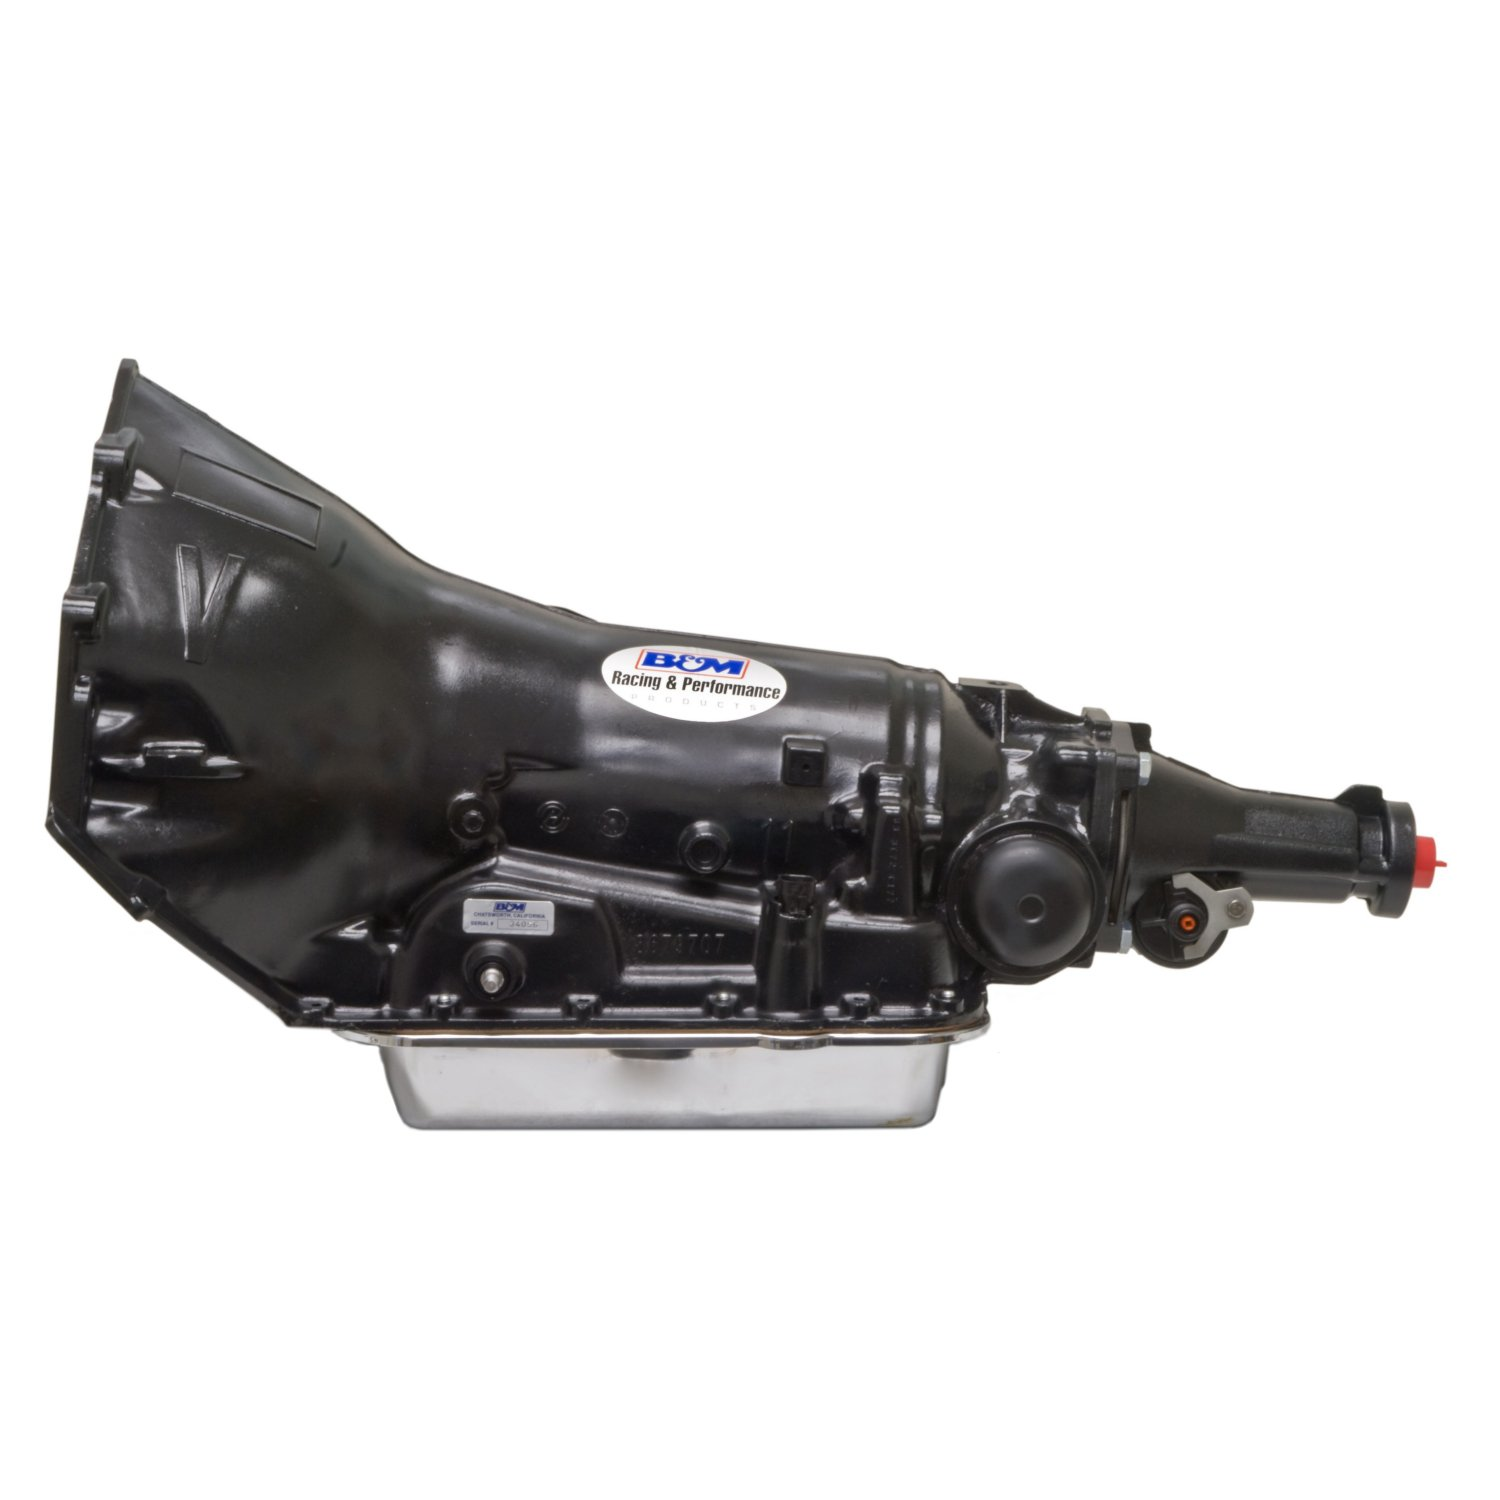 Gm 700r4 Transmission >> B M 117103 B M Street Strip Automatic Transmission 2wd 700r4 4l60